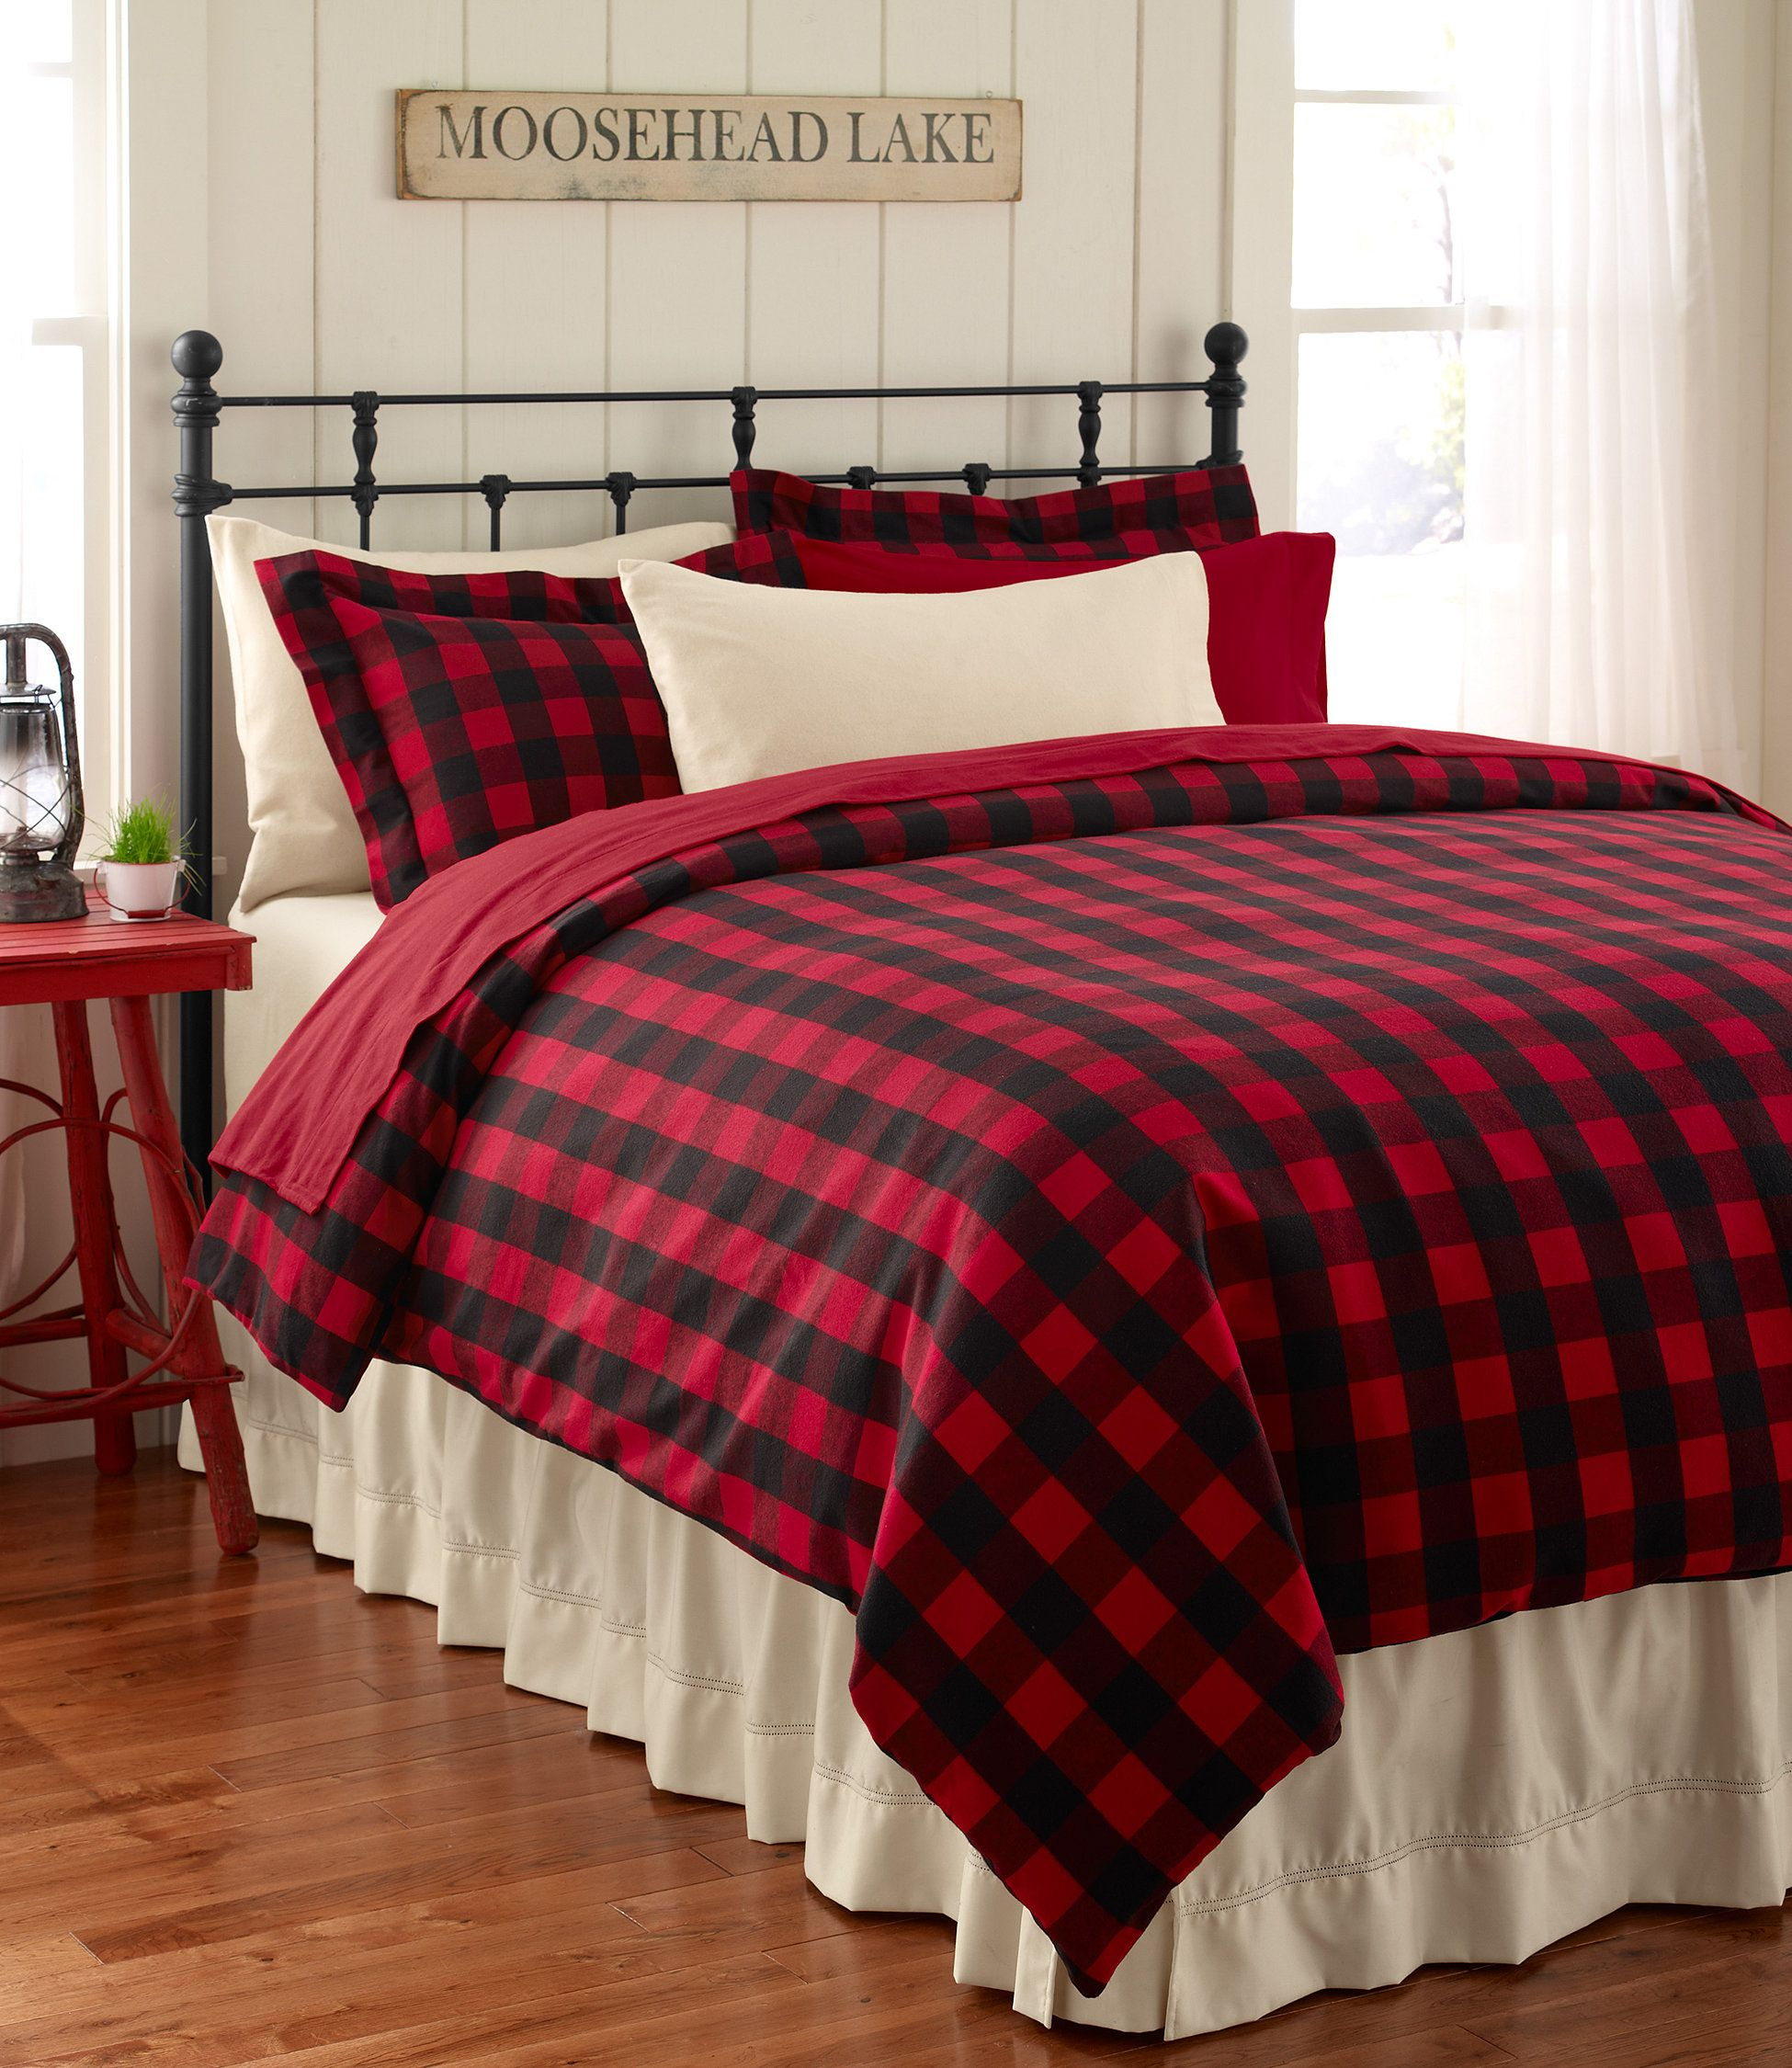 Ultrasoft Flannel Comforter Cover Buffalo Plaid Bedding Free Shipping At L L Bean Bedroom Red Home Rustic Bedroom